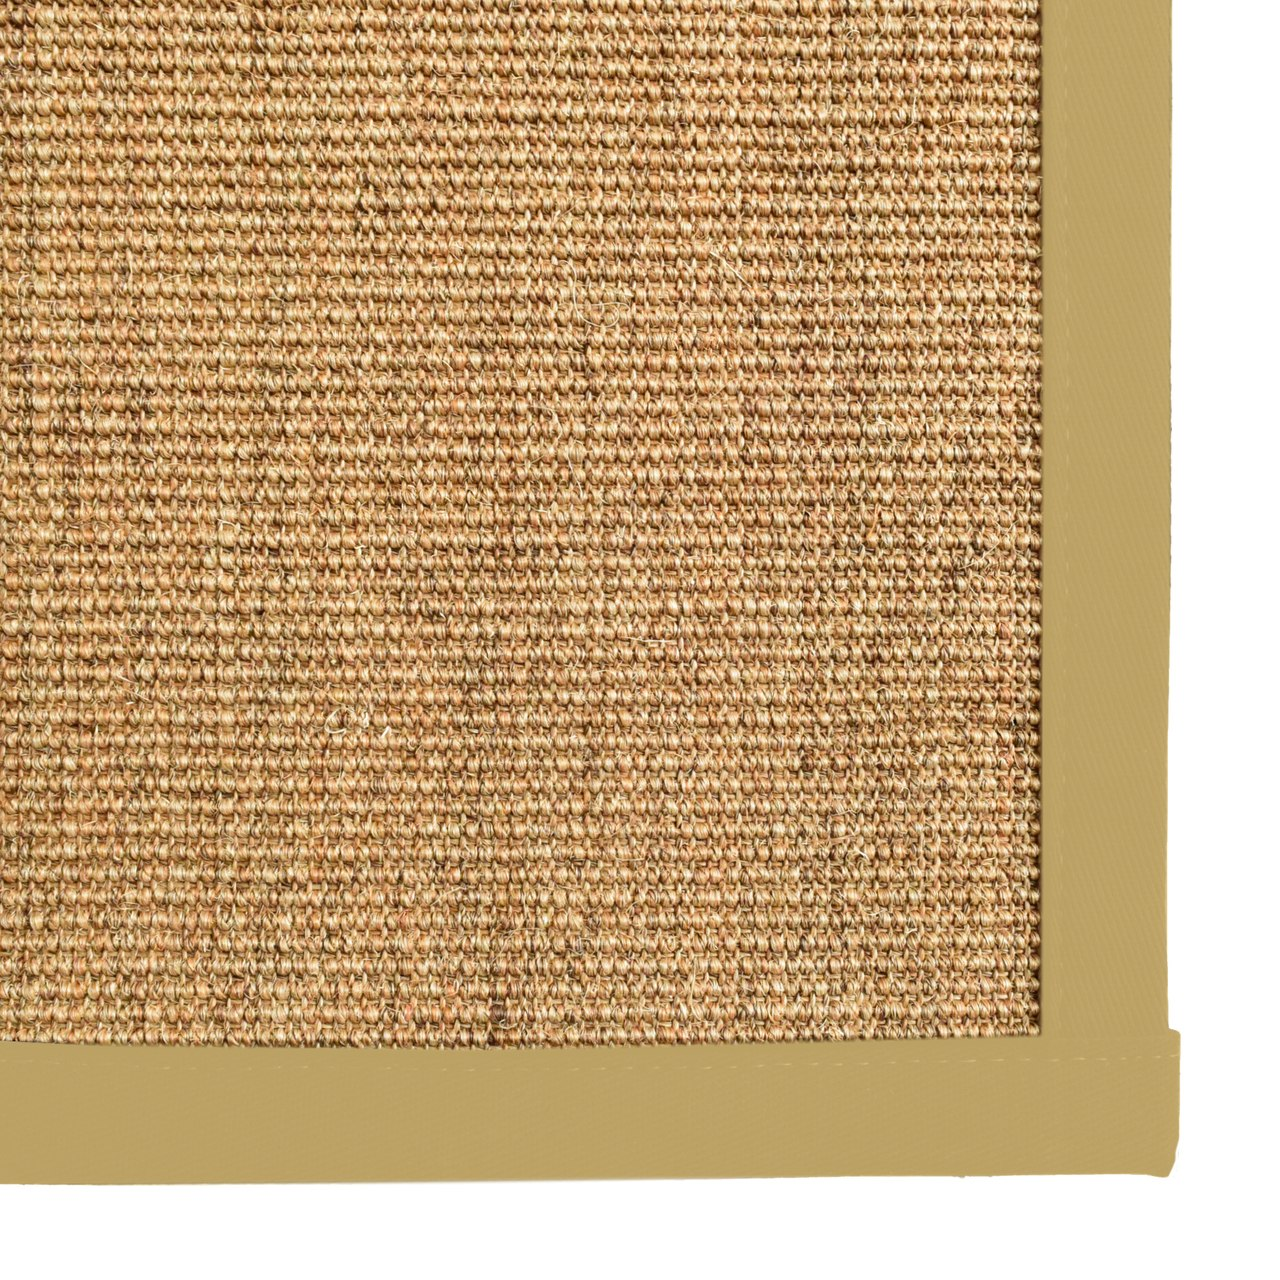 Bristol Natural Sisal Area Rug with Mustard Yellow Color